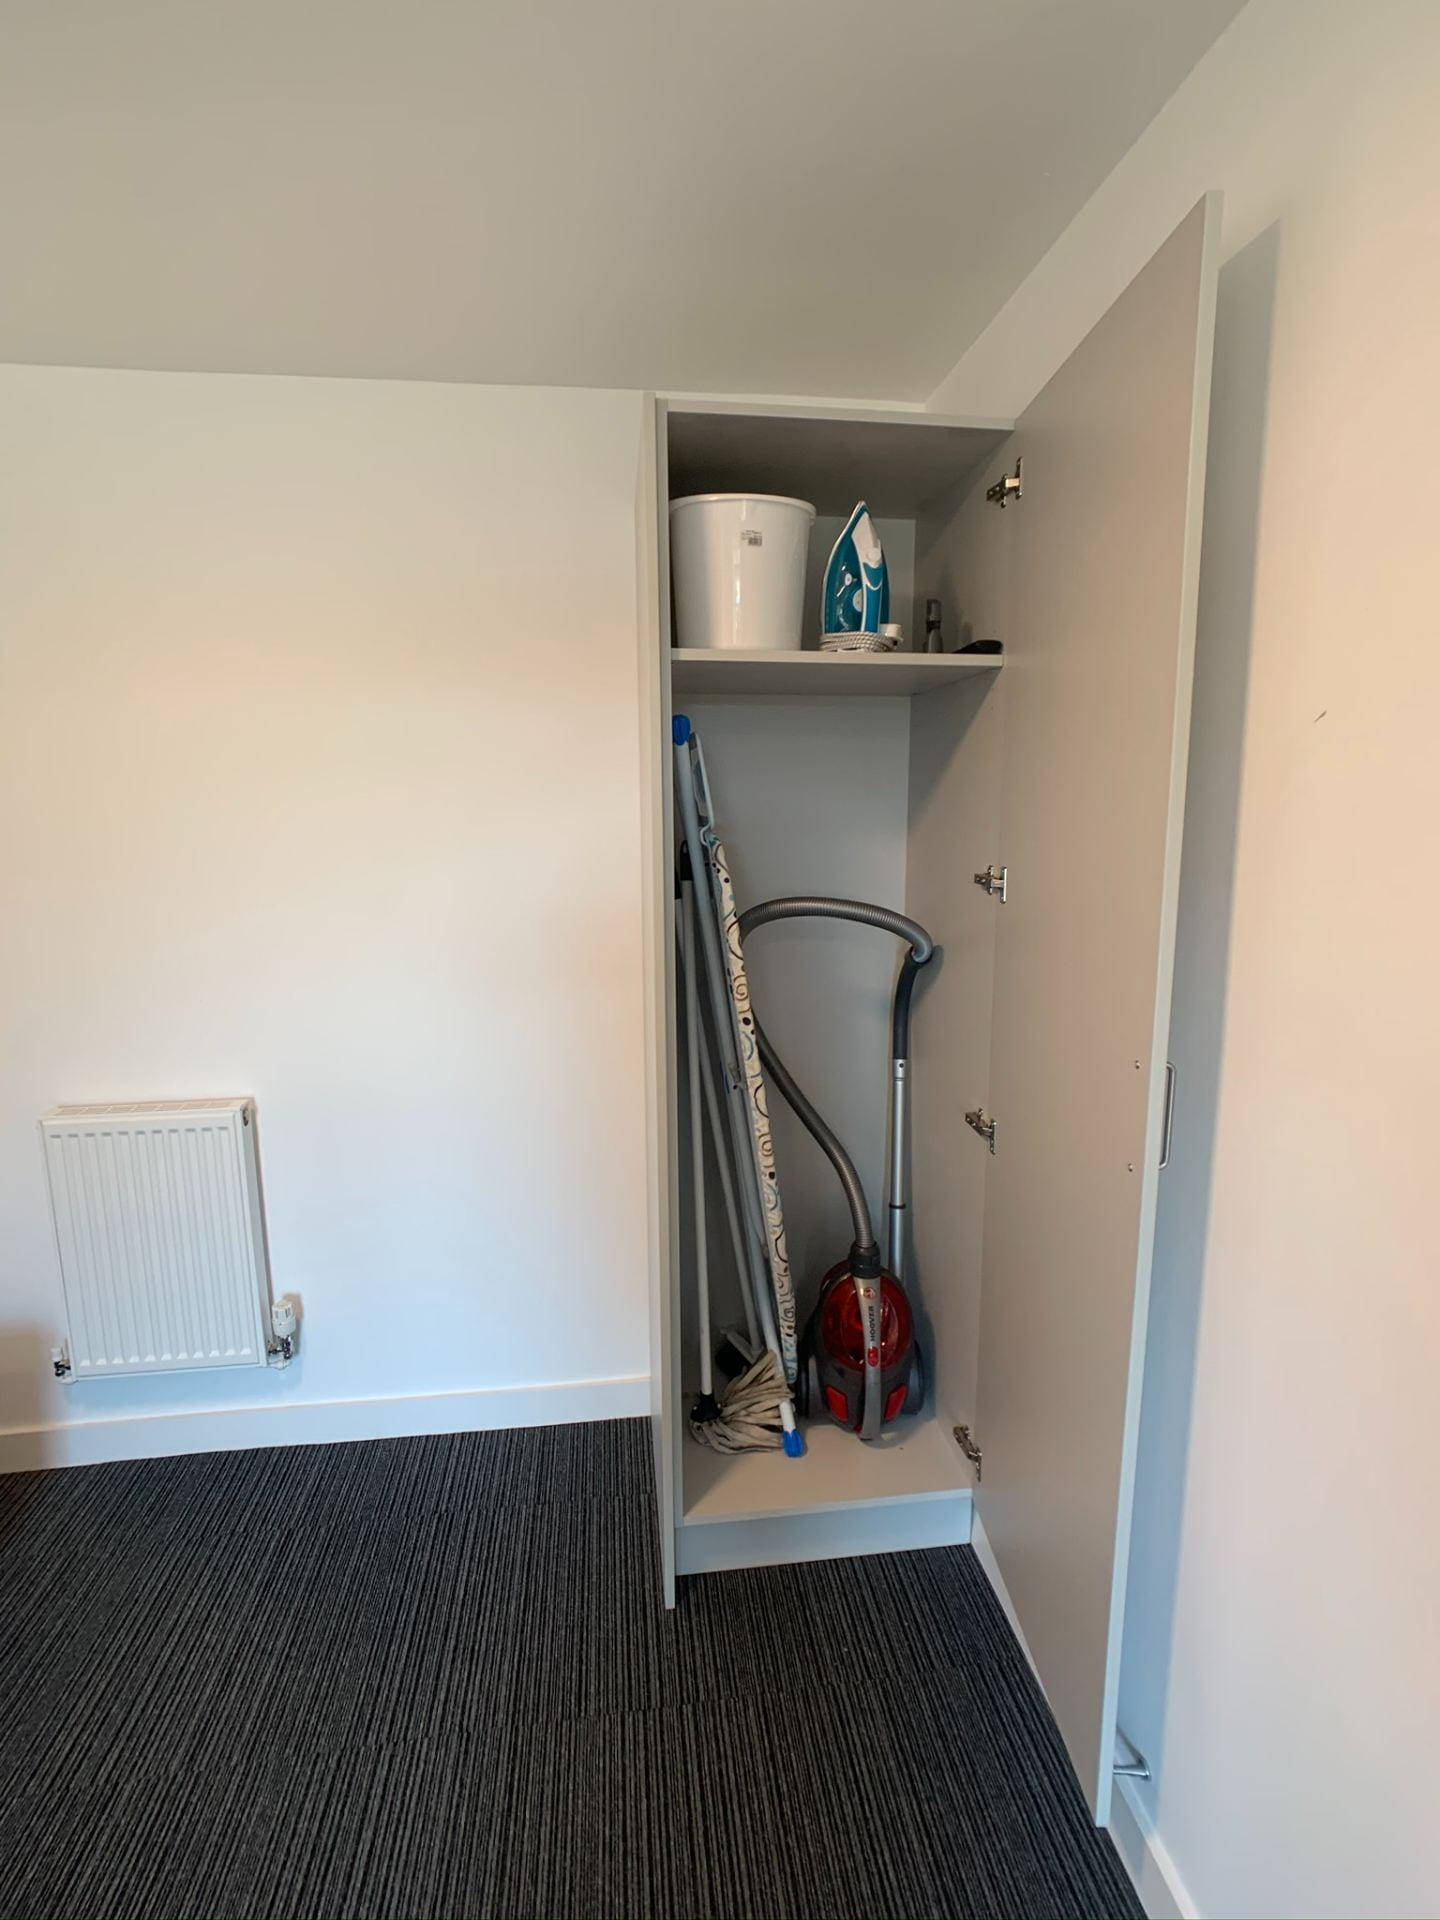 Valentine Court lounge showing communal cupboard including hoover, mop and bucket.